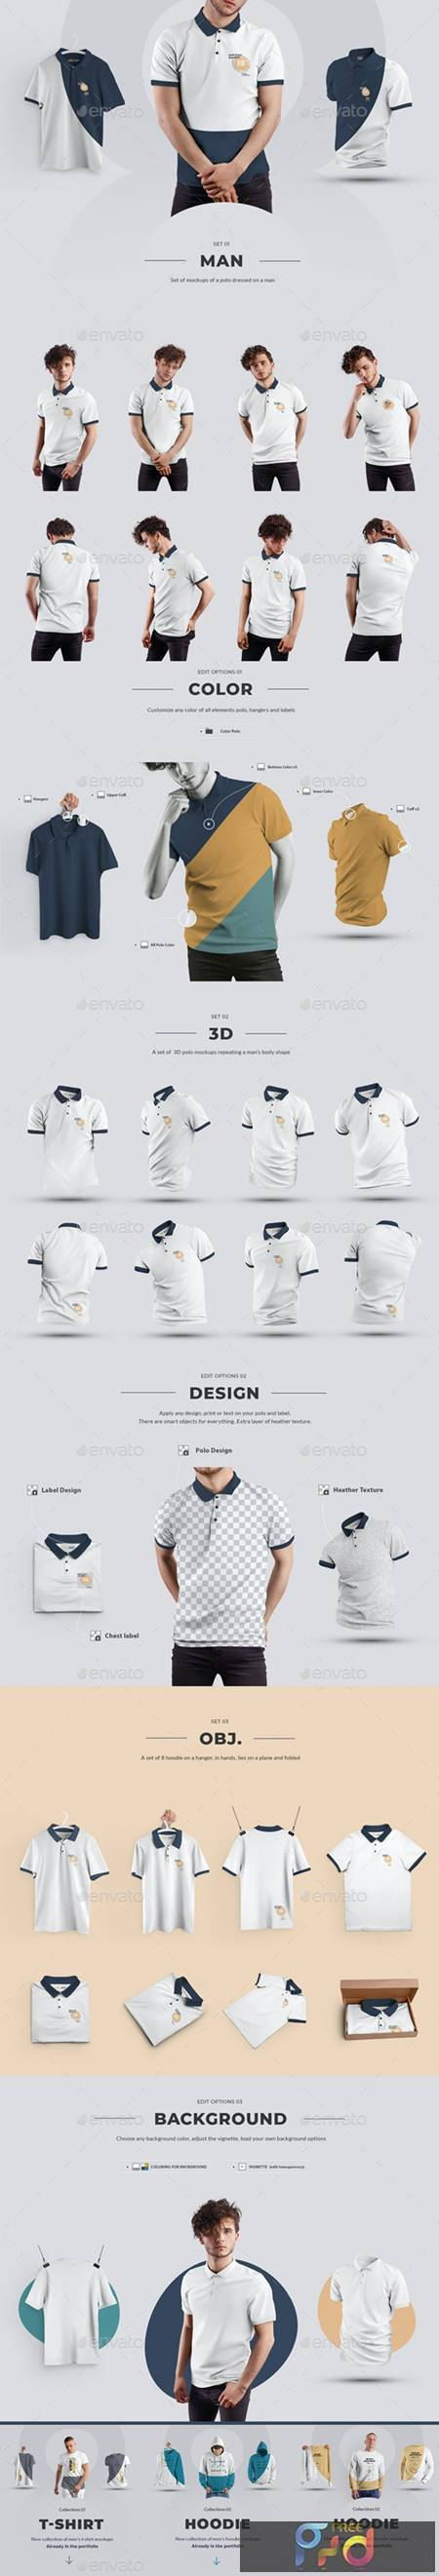 24 Polo Men Mockup - Man-3D-Objects ( Collection #4 ) 29362775 1